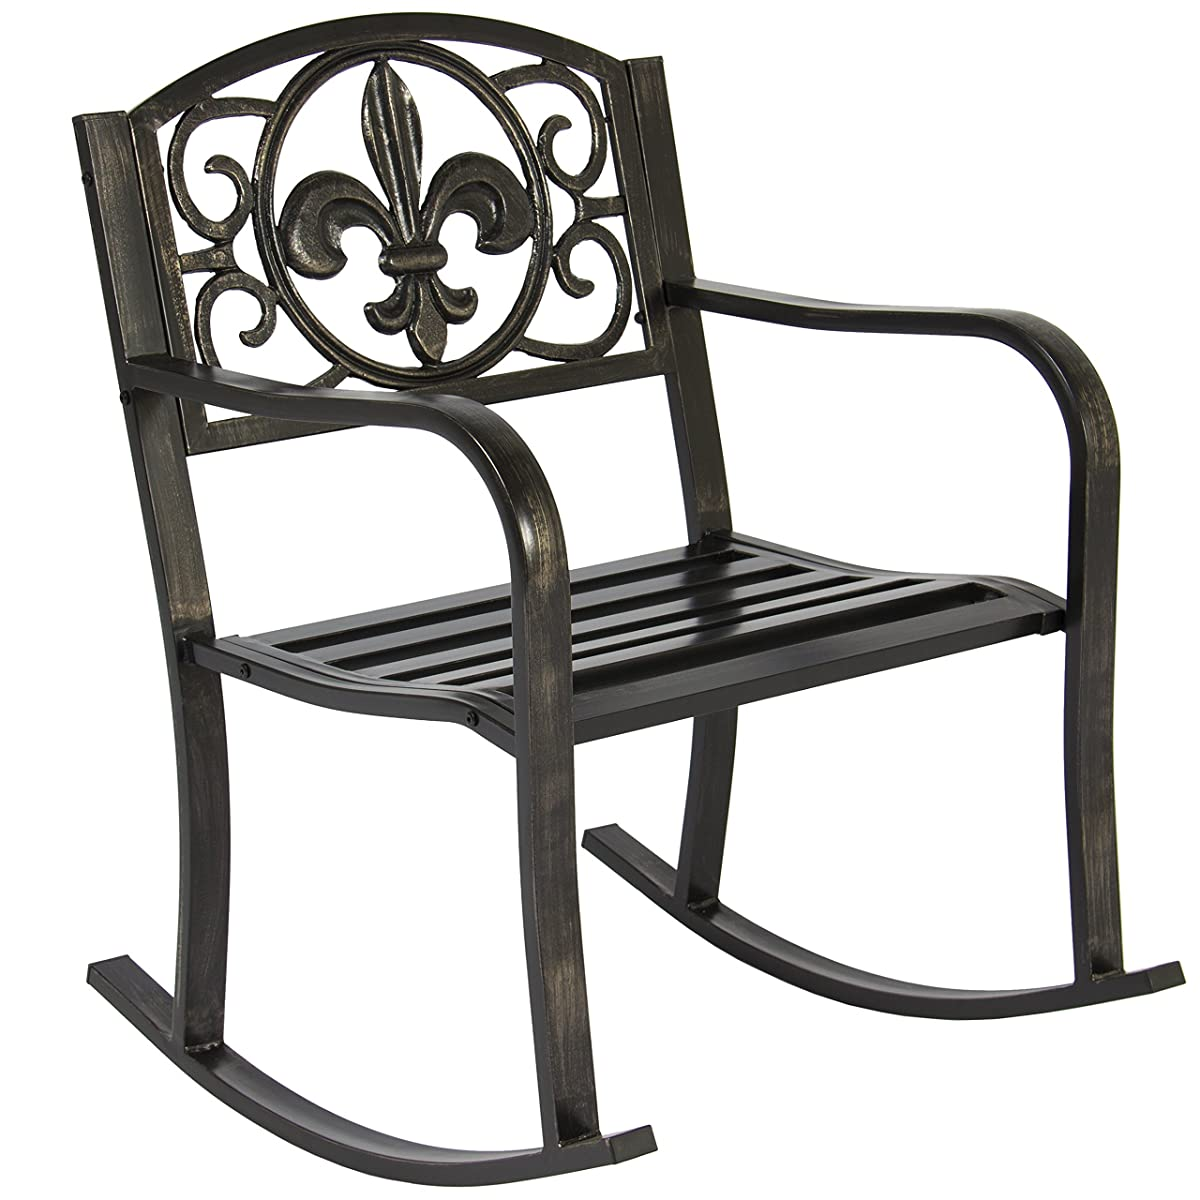 Best Choice Products Metal Rocking Chair Seat for Patio, Porch, Deck, Outdoor w/Scroll Design - Black/Bronze